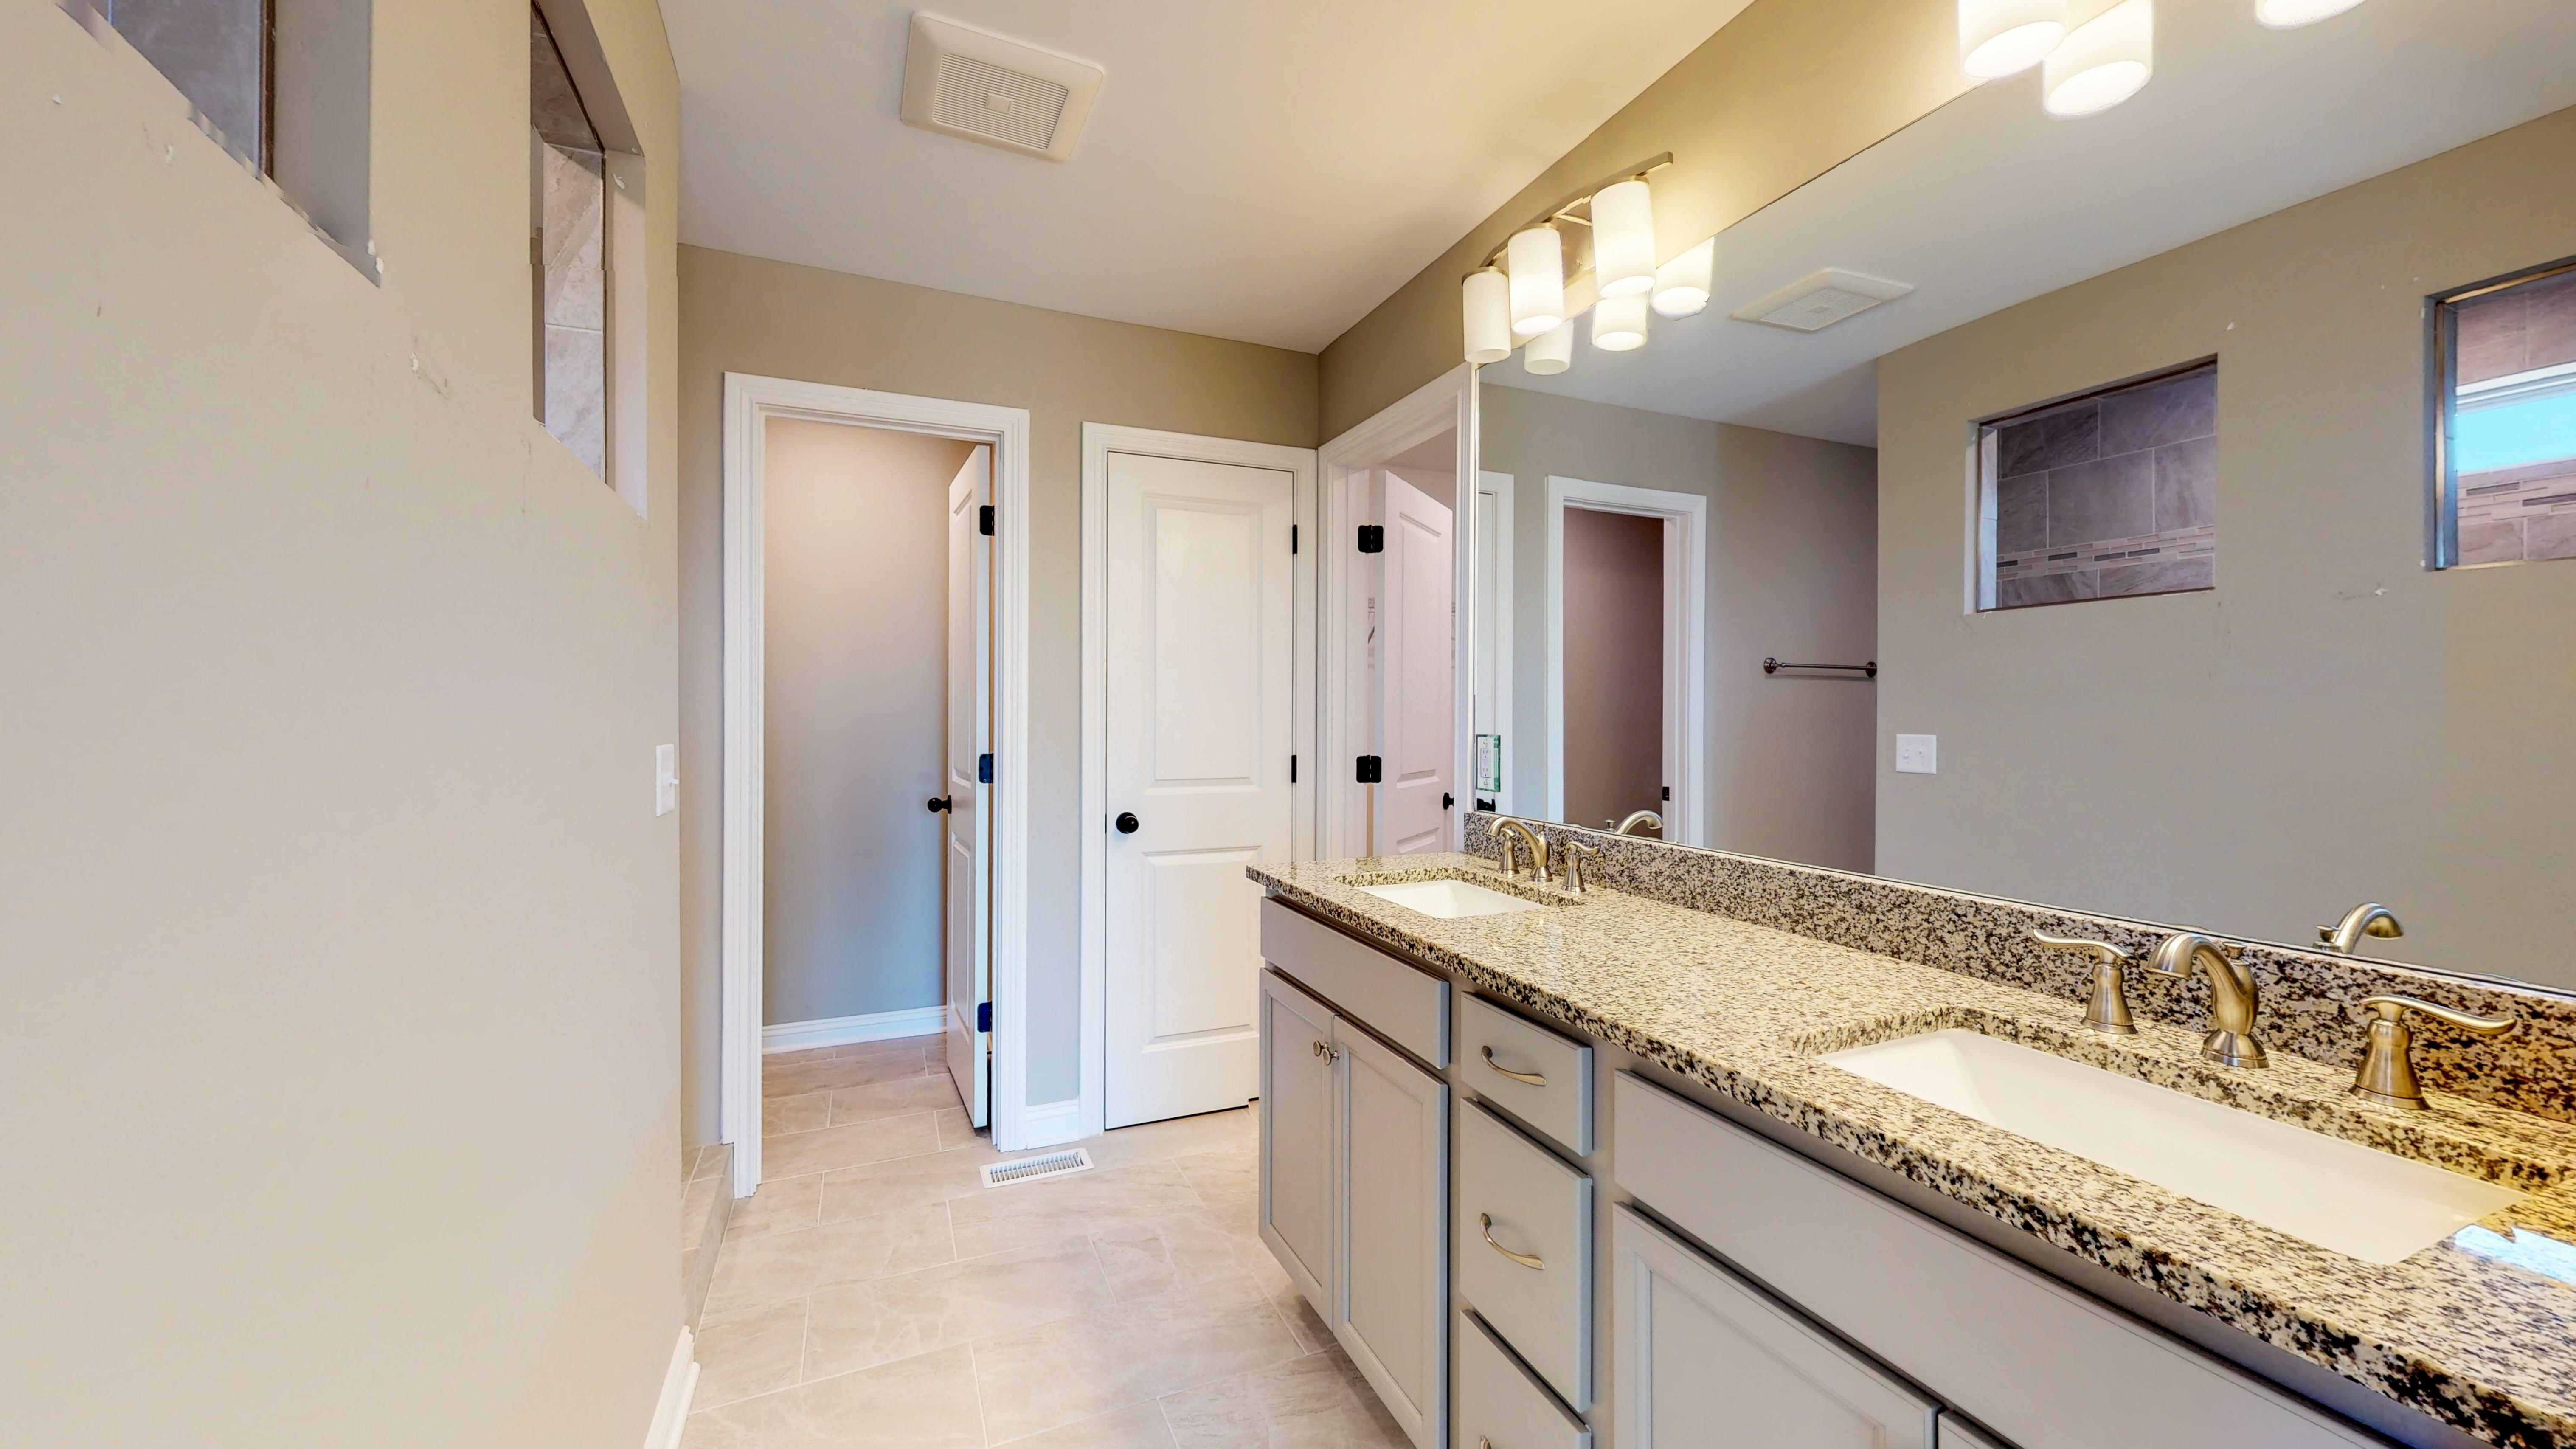 Bathroom featured in The Jackie - 3rd Car By James Monroe Homes in Lexington, KY